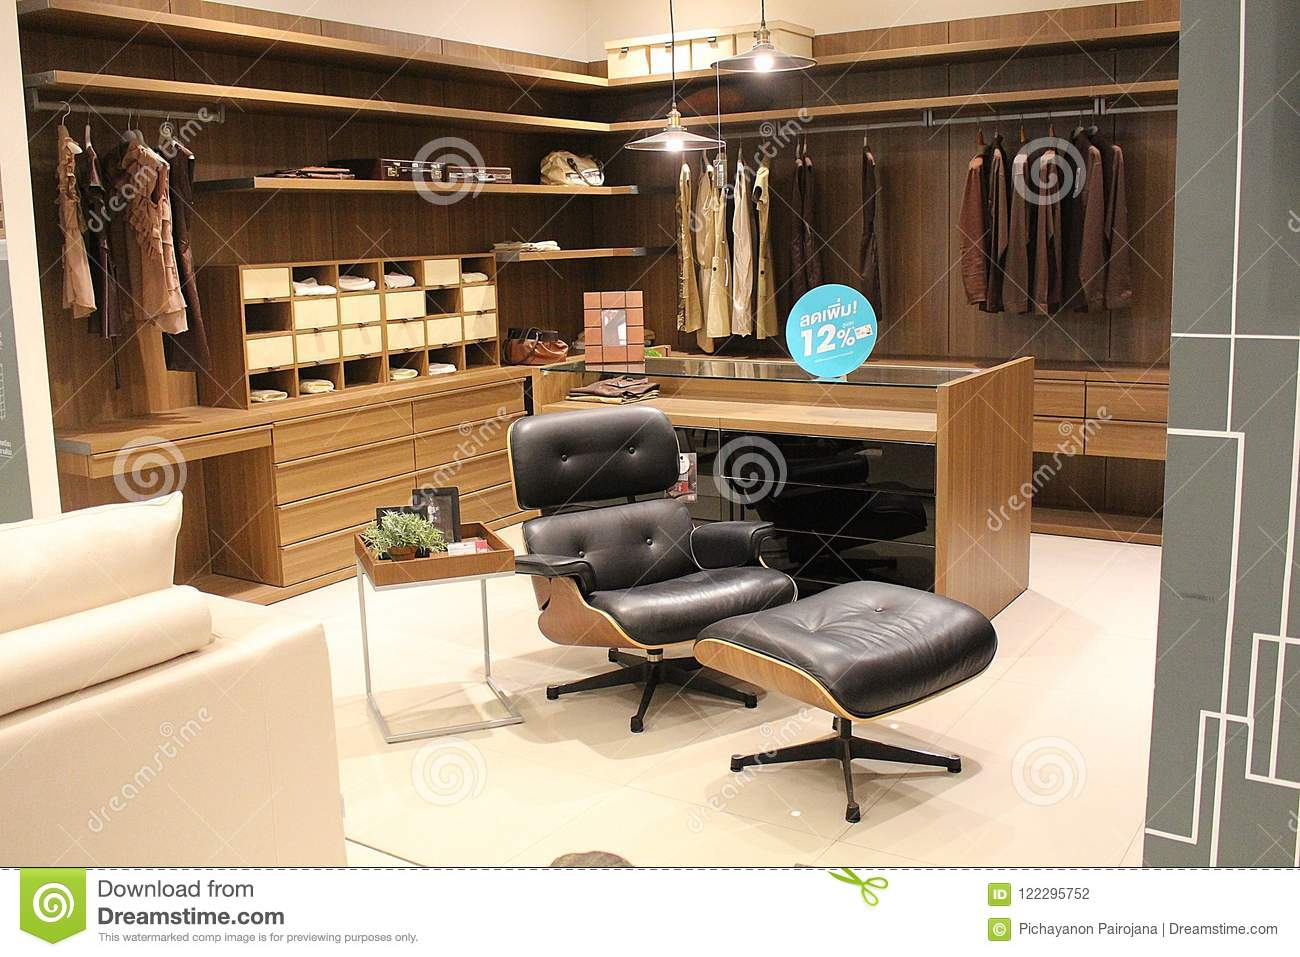 Nakhonratchasima thailand july 11 2018 furniture goods be modern design show these for sell at the mall korat in nakhonratchasima province thailand